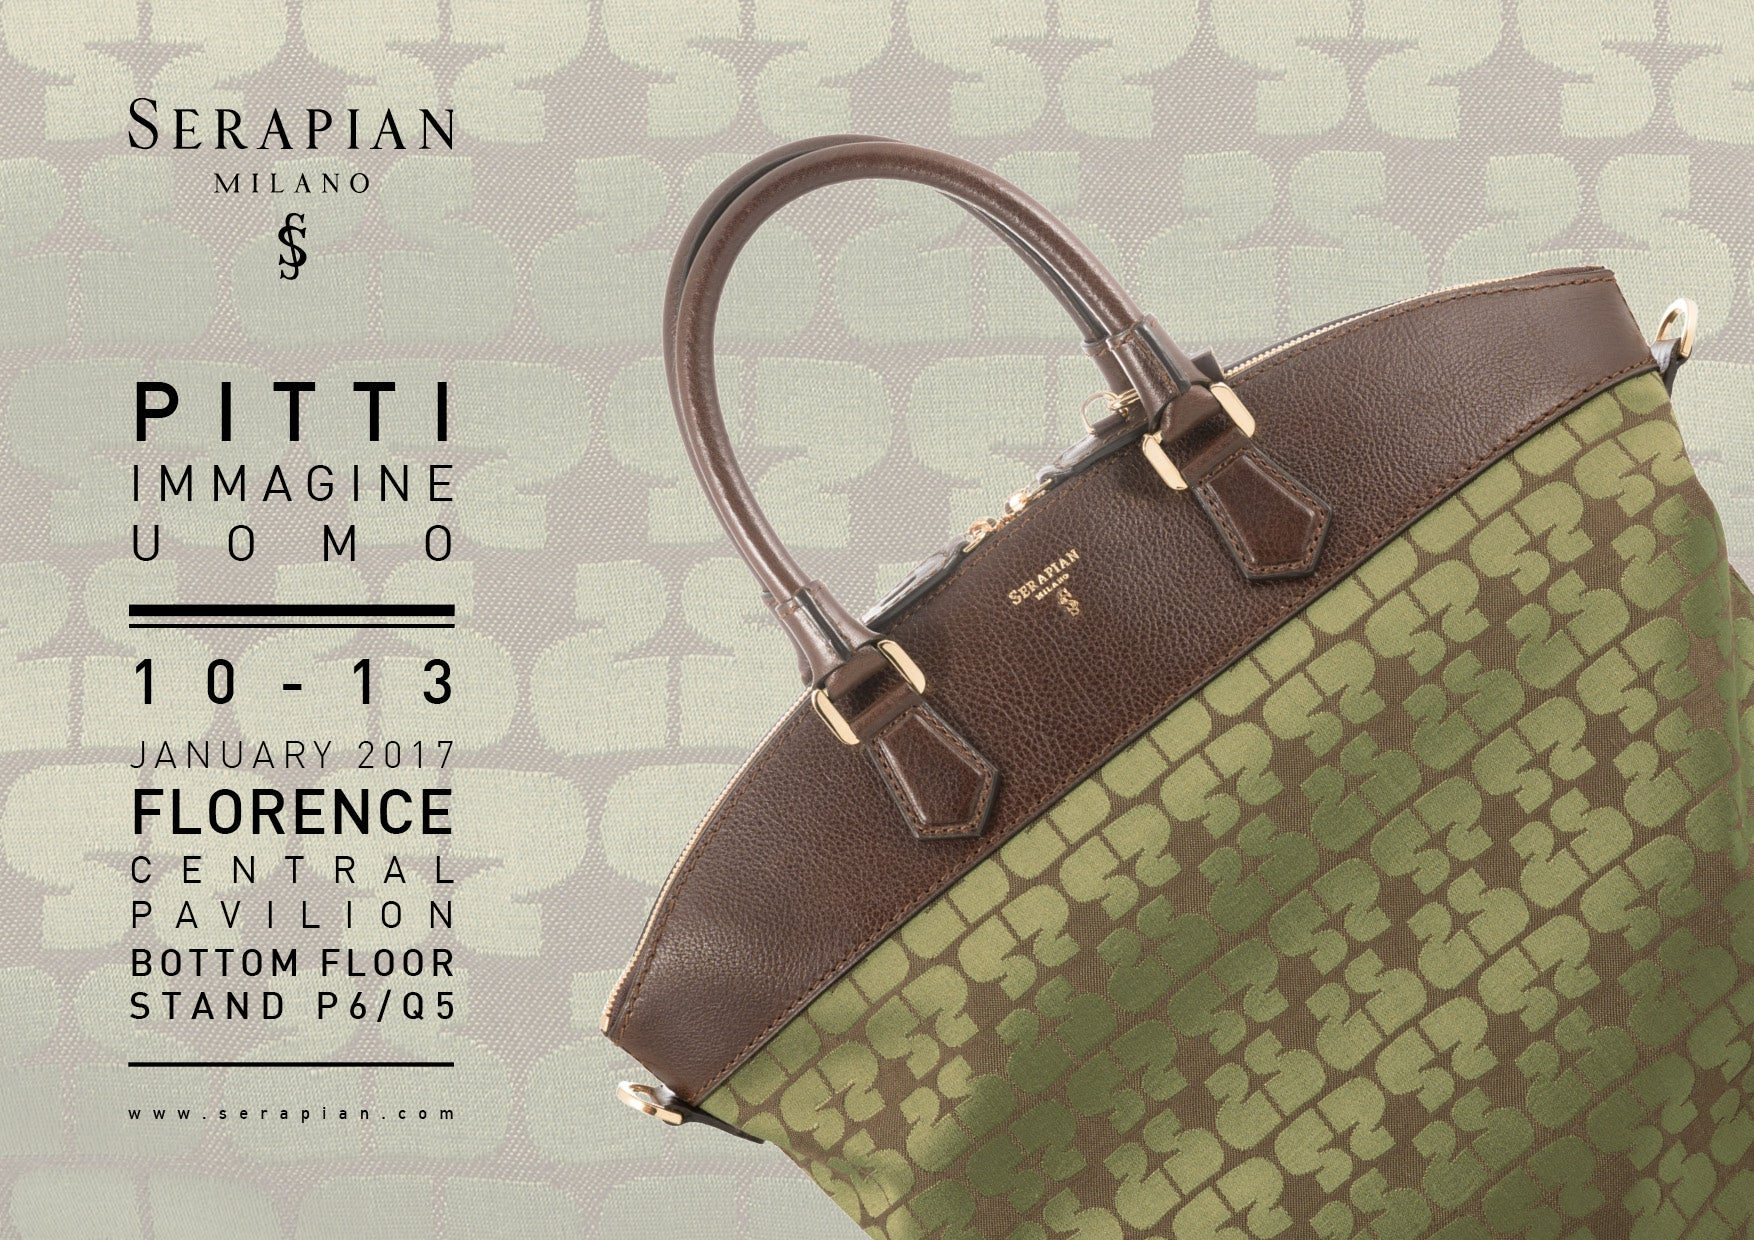 Serapian Save the Date for Pitti Uomo Jan 2017